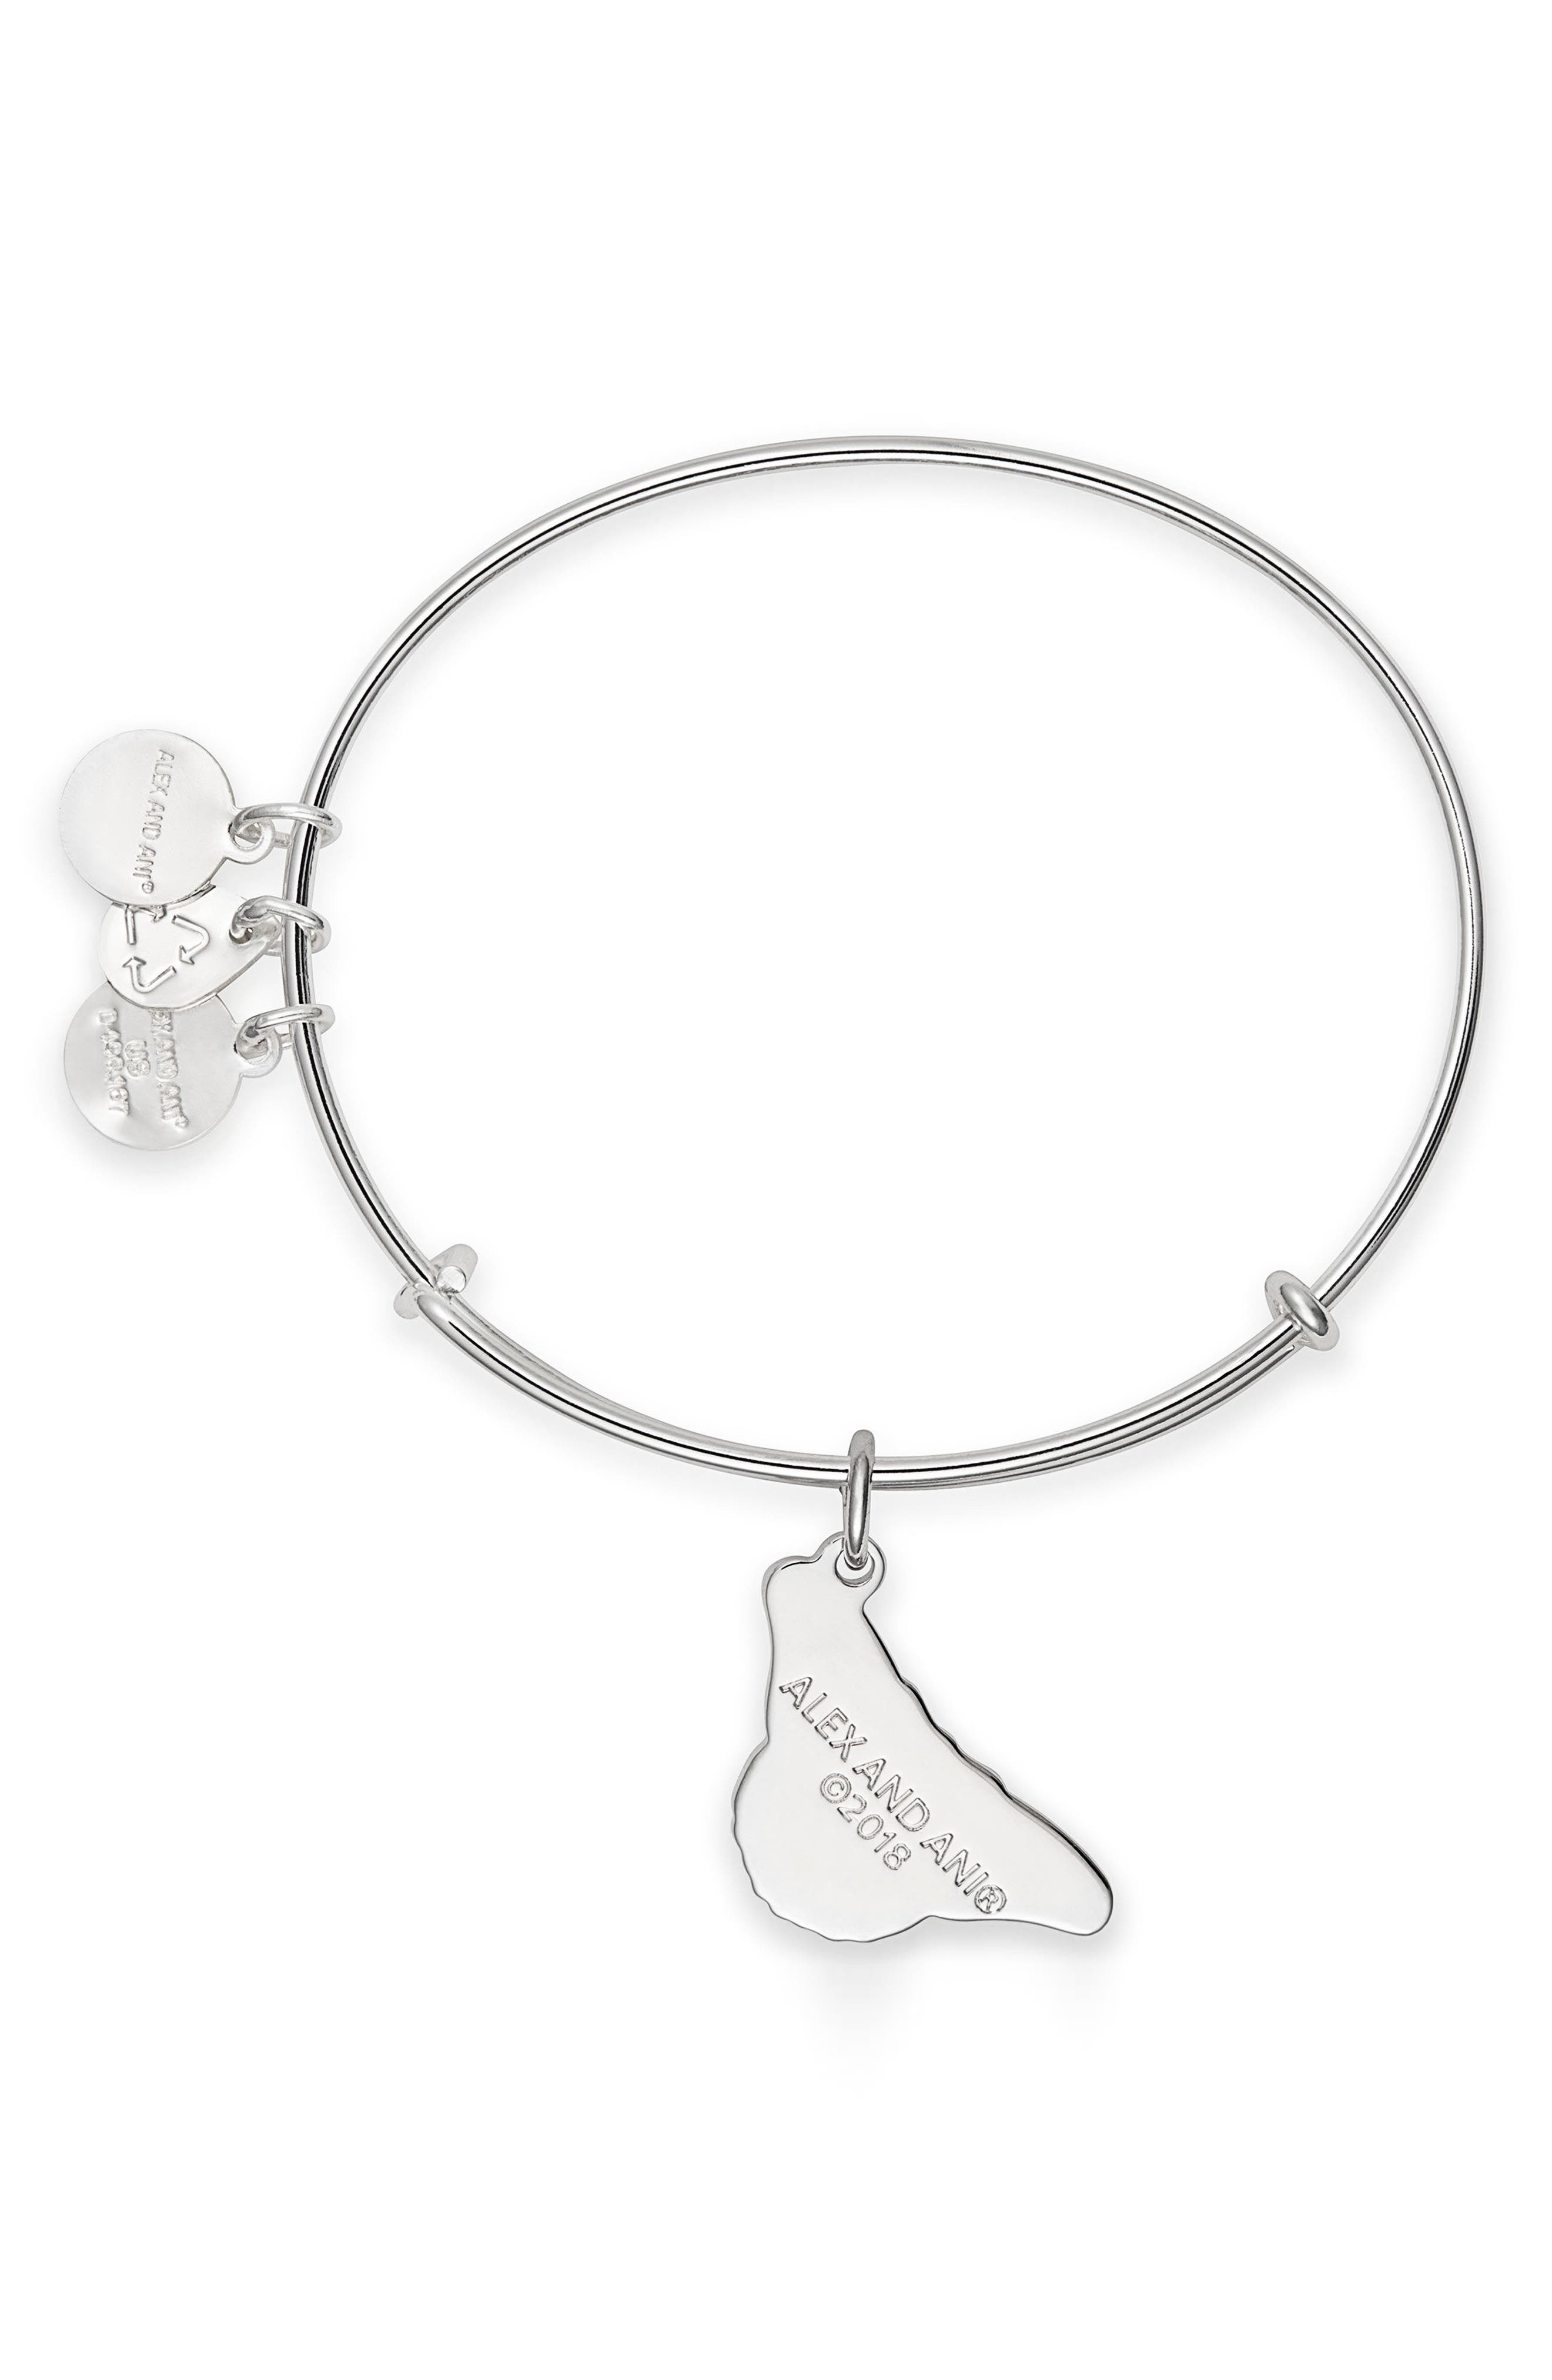 Charity by Design Monarch Butterfly Charm Bracelet,                             Alternate thumbnail 2, color,                             040